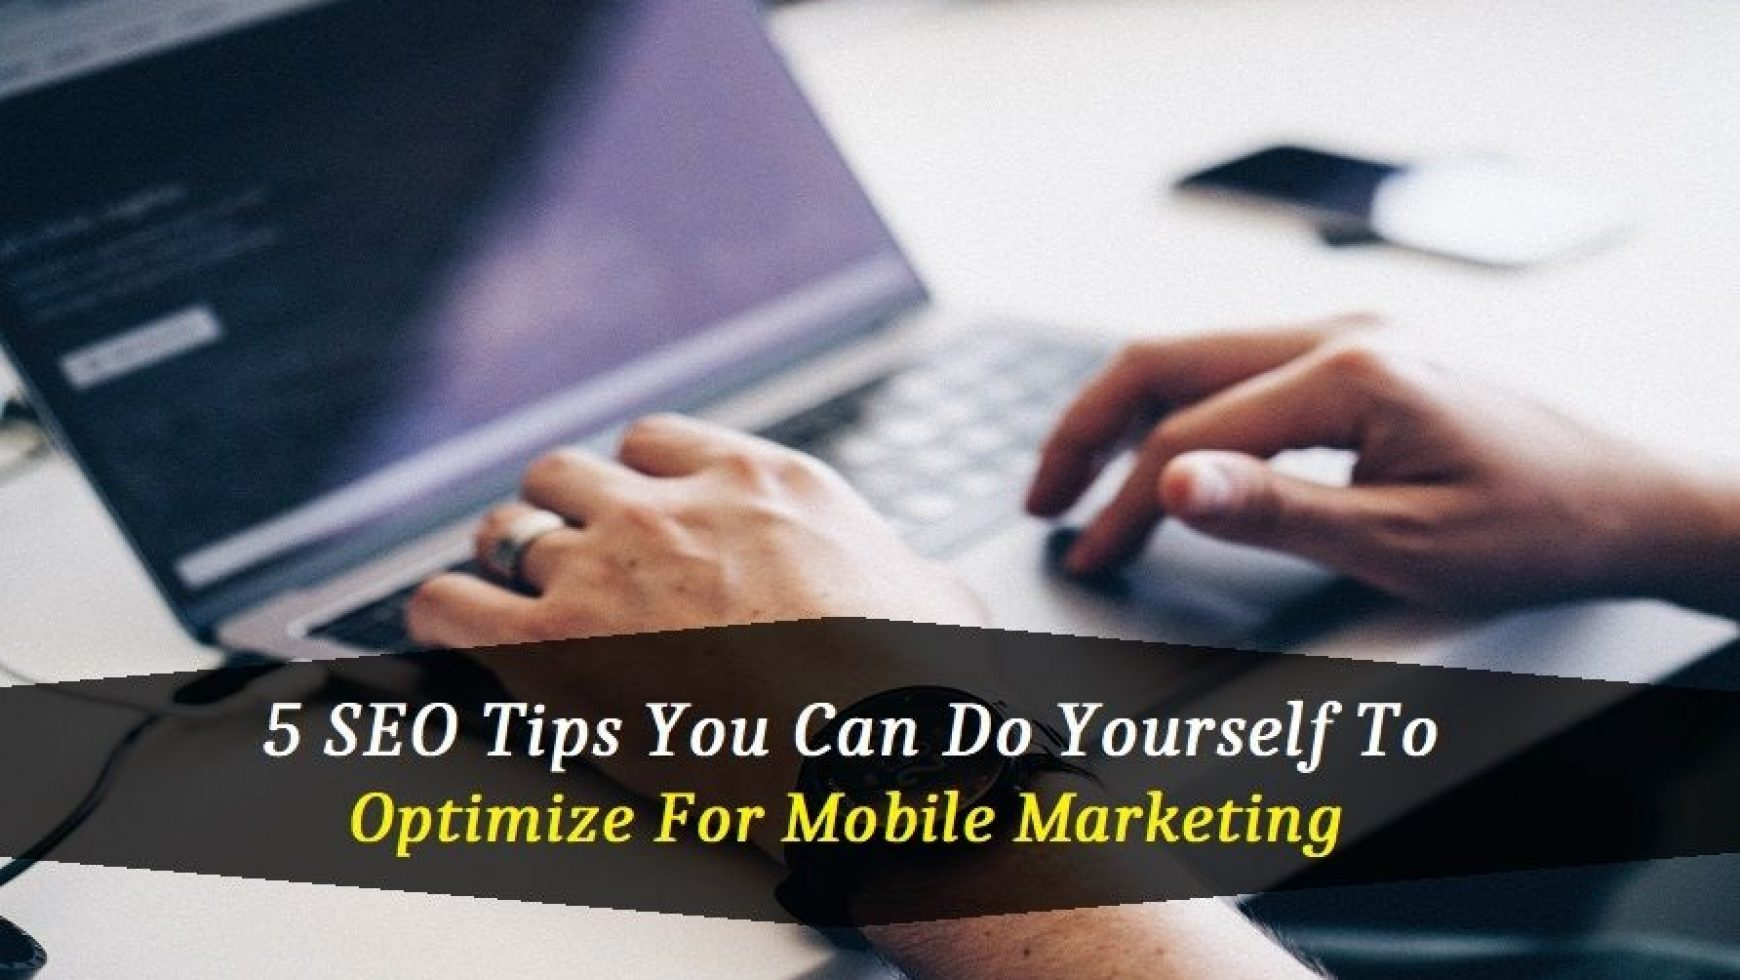 5 SEO Tips You Can Do Yourself To Optimize For Mobile Marketing